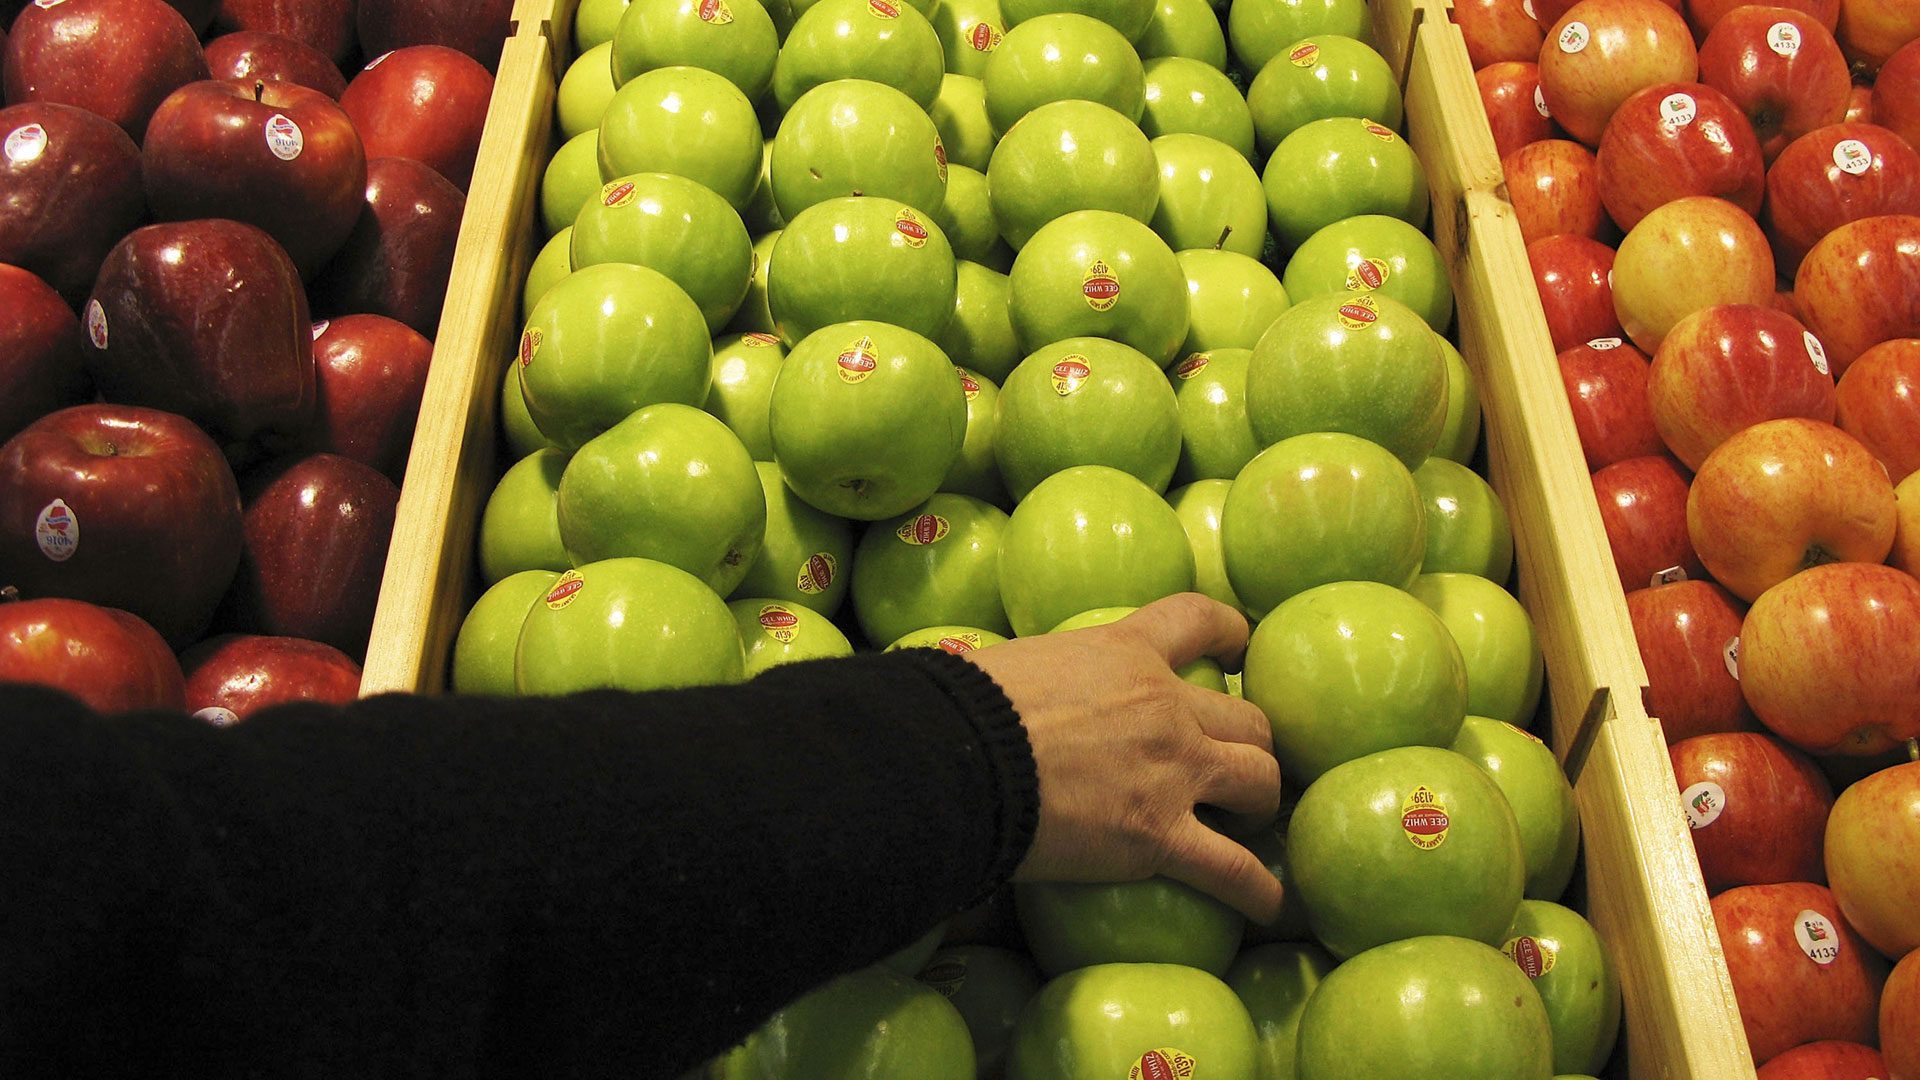 apples in grocery store37368492-159532